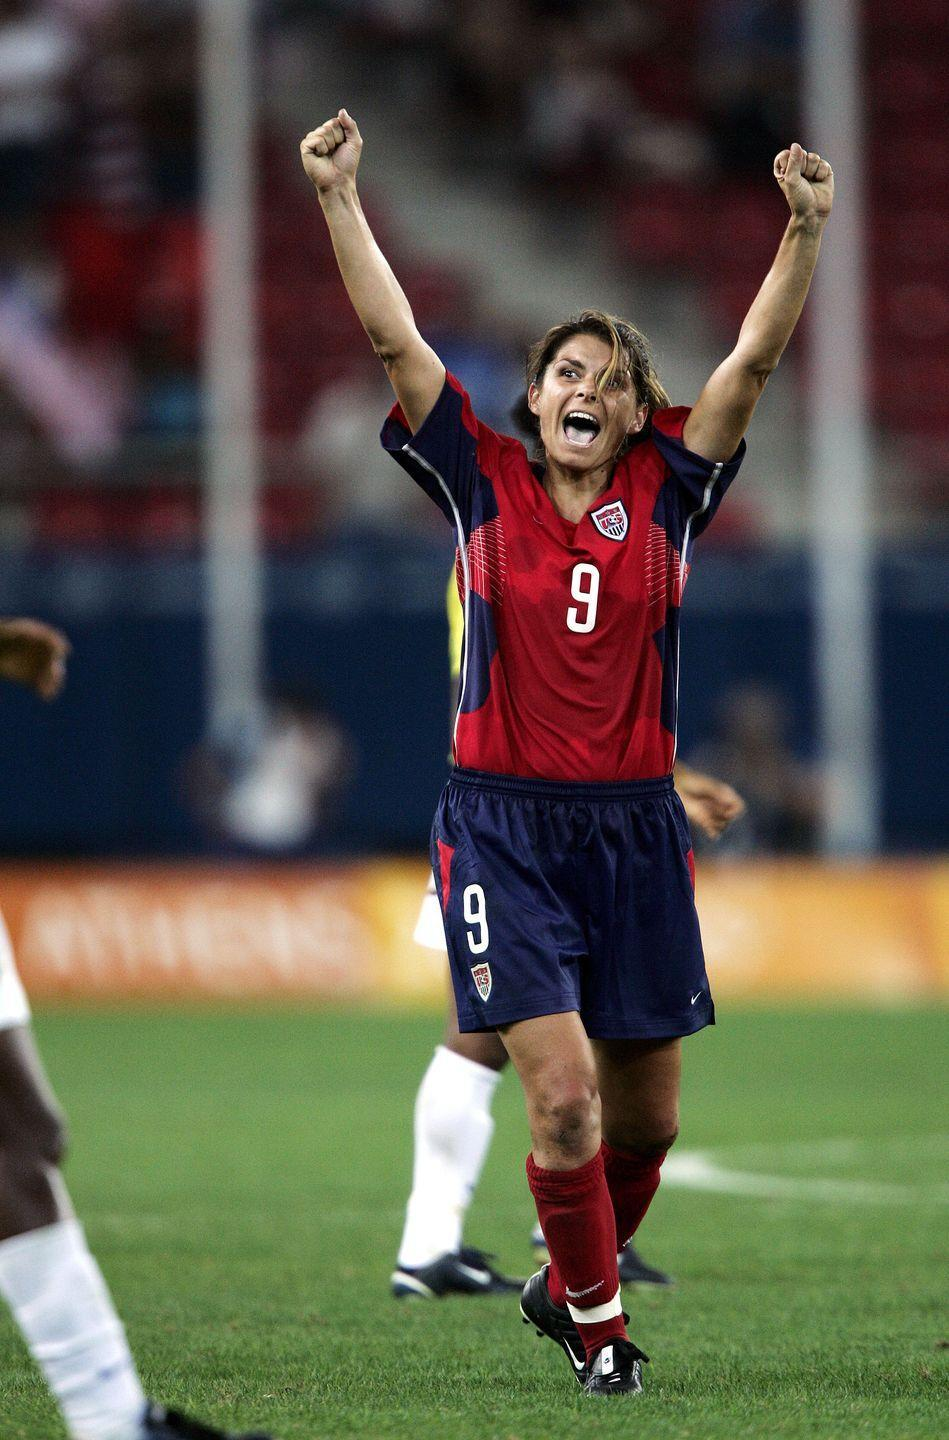 <p>The women's U.S. soccer team beat Brazil 2-1 by netting a spectacular goal in overtime. </p>